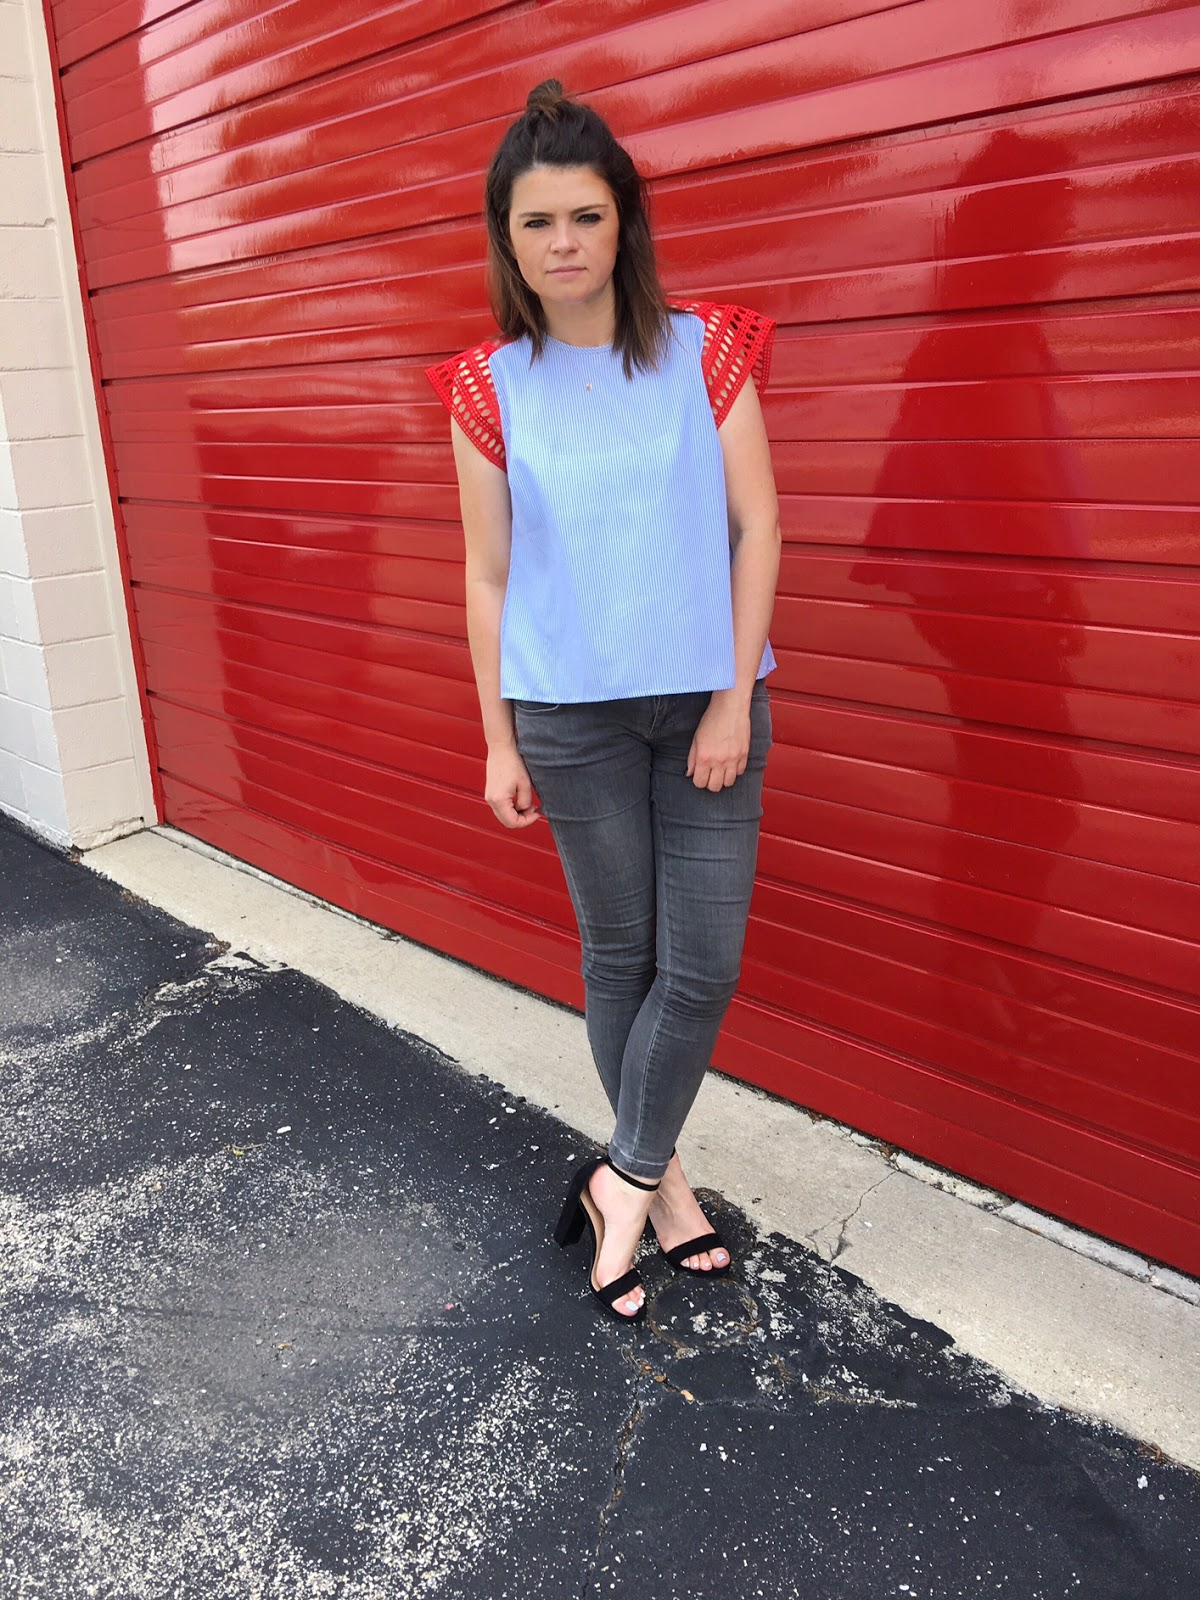 A blue top with red eyelet sleeves